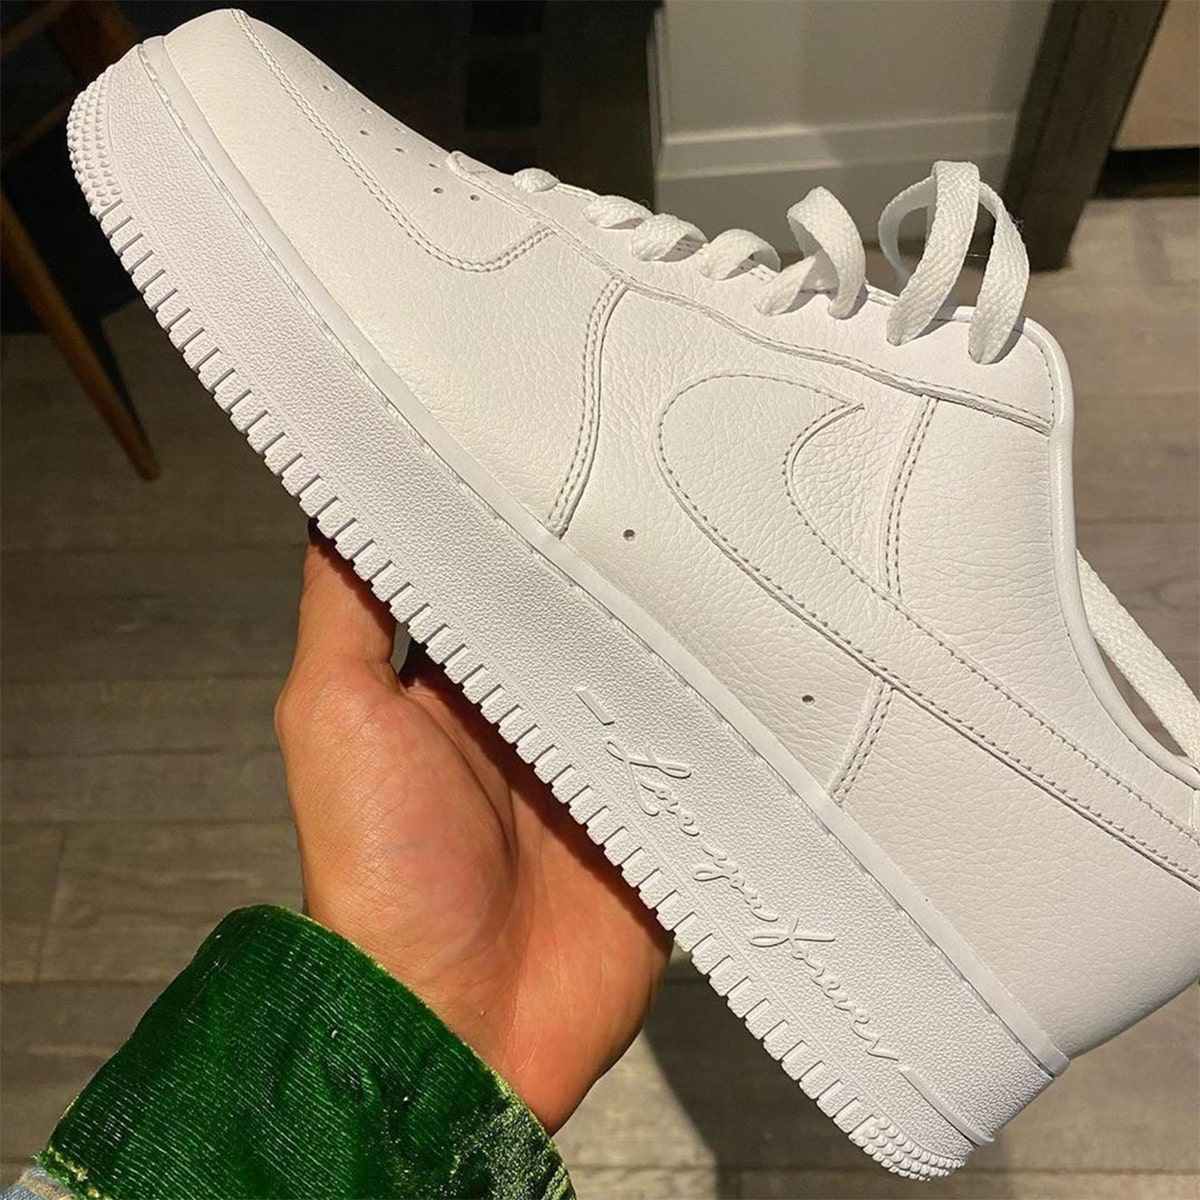 First Looks // Drake x Nike Air Force 1 Low